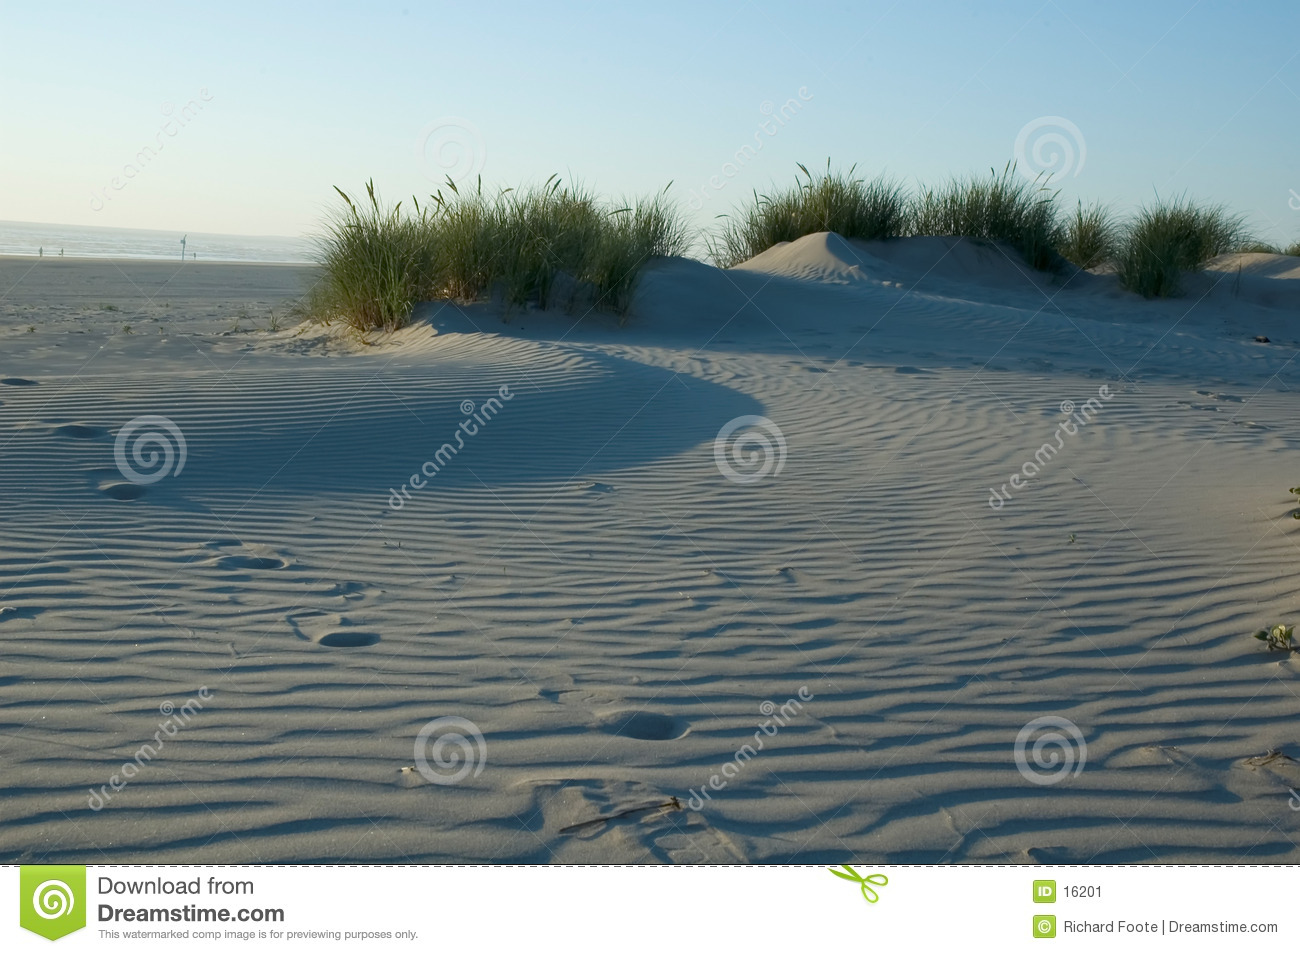 Dune de sable herbeuse